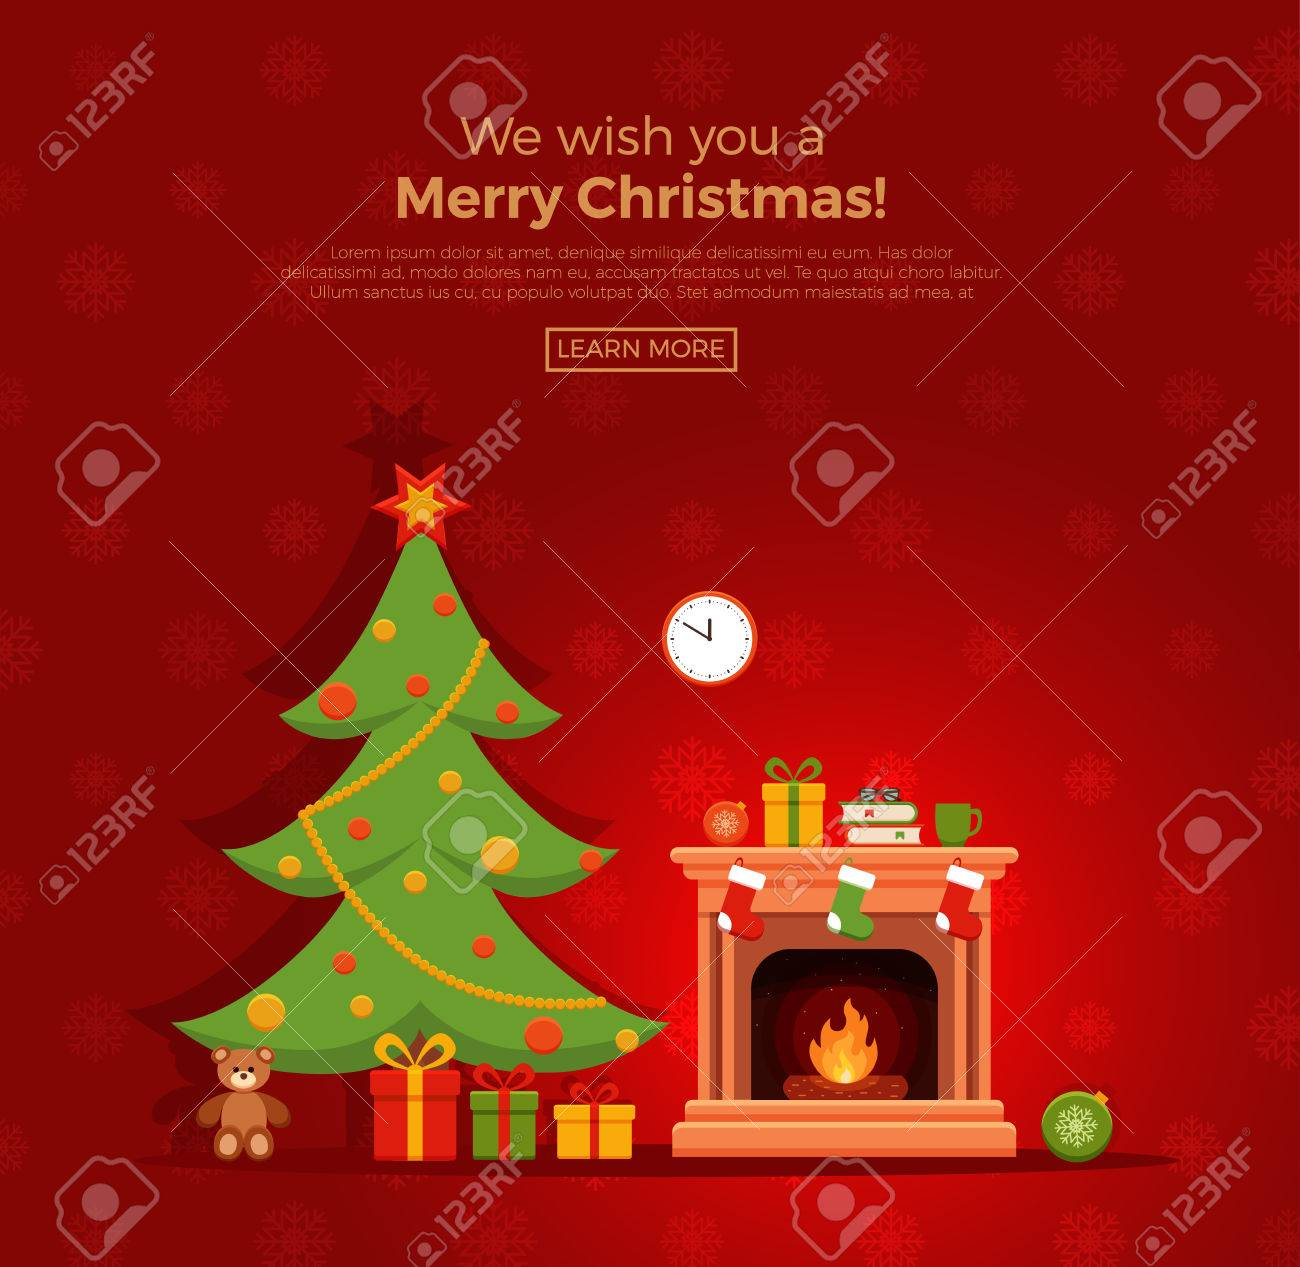 Christmas fireplace room interior in colorful cartoon flat style